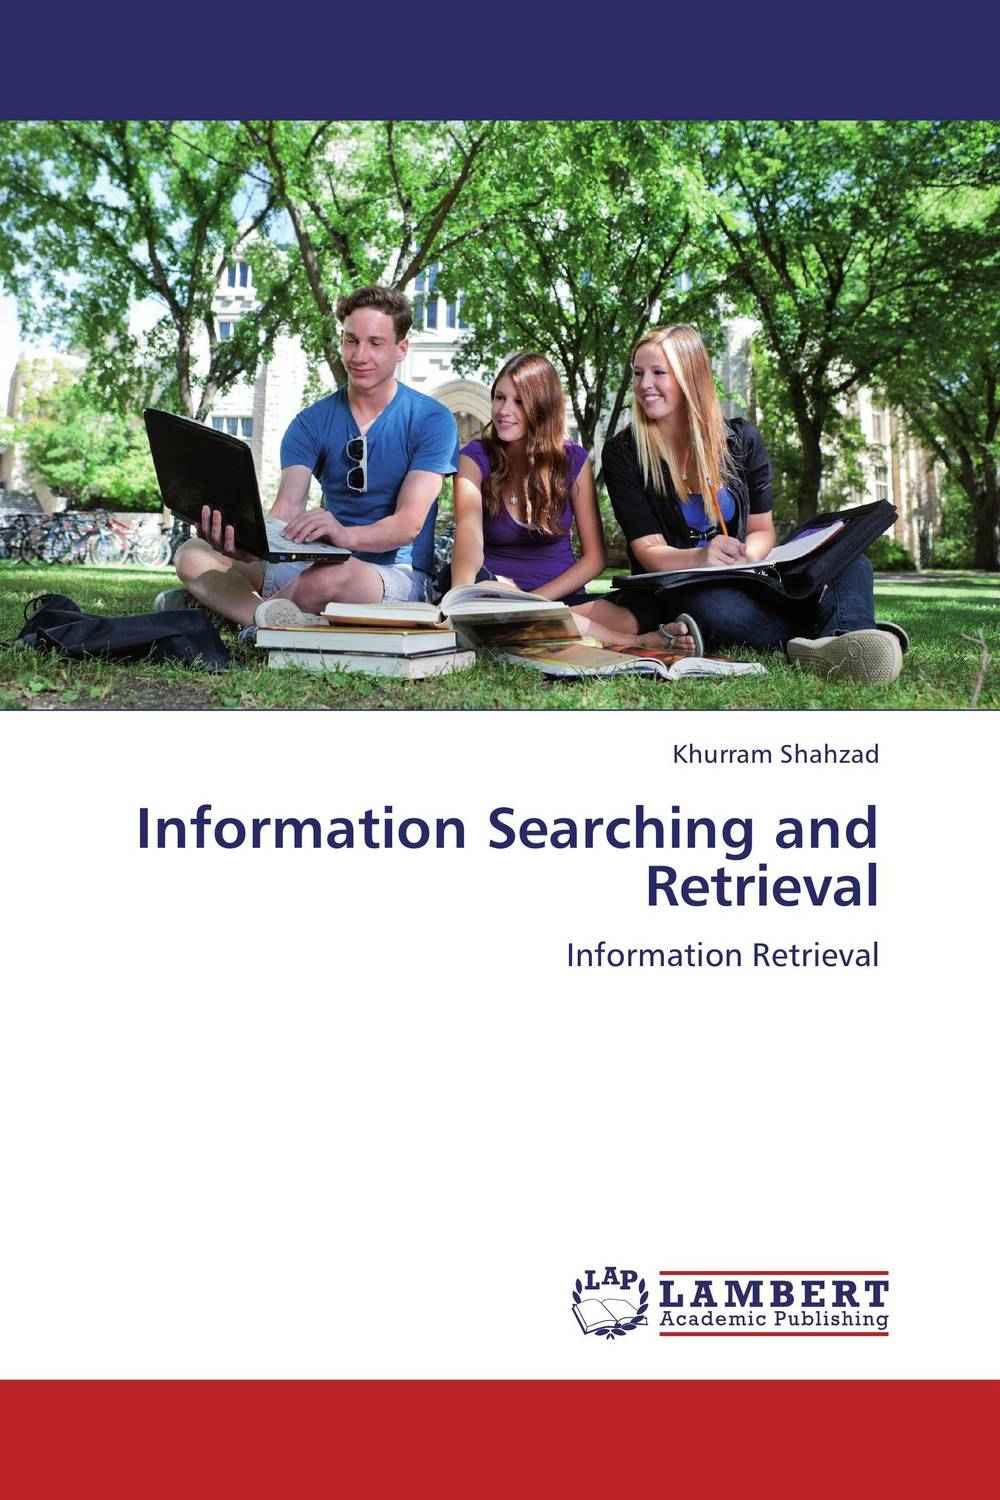 Information Searching and Retrieval designing of an information retrieval system in veterinary science